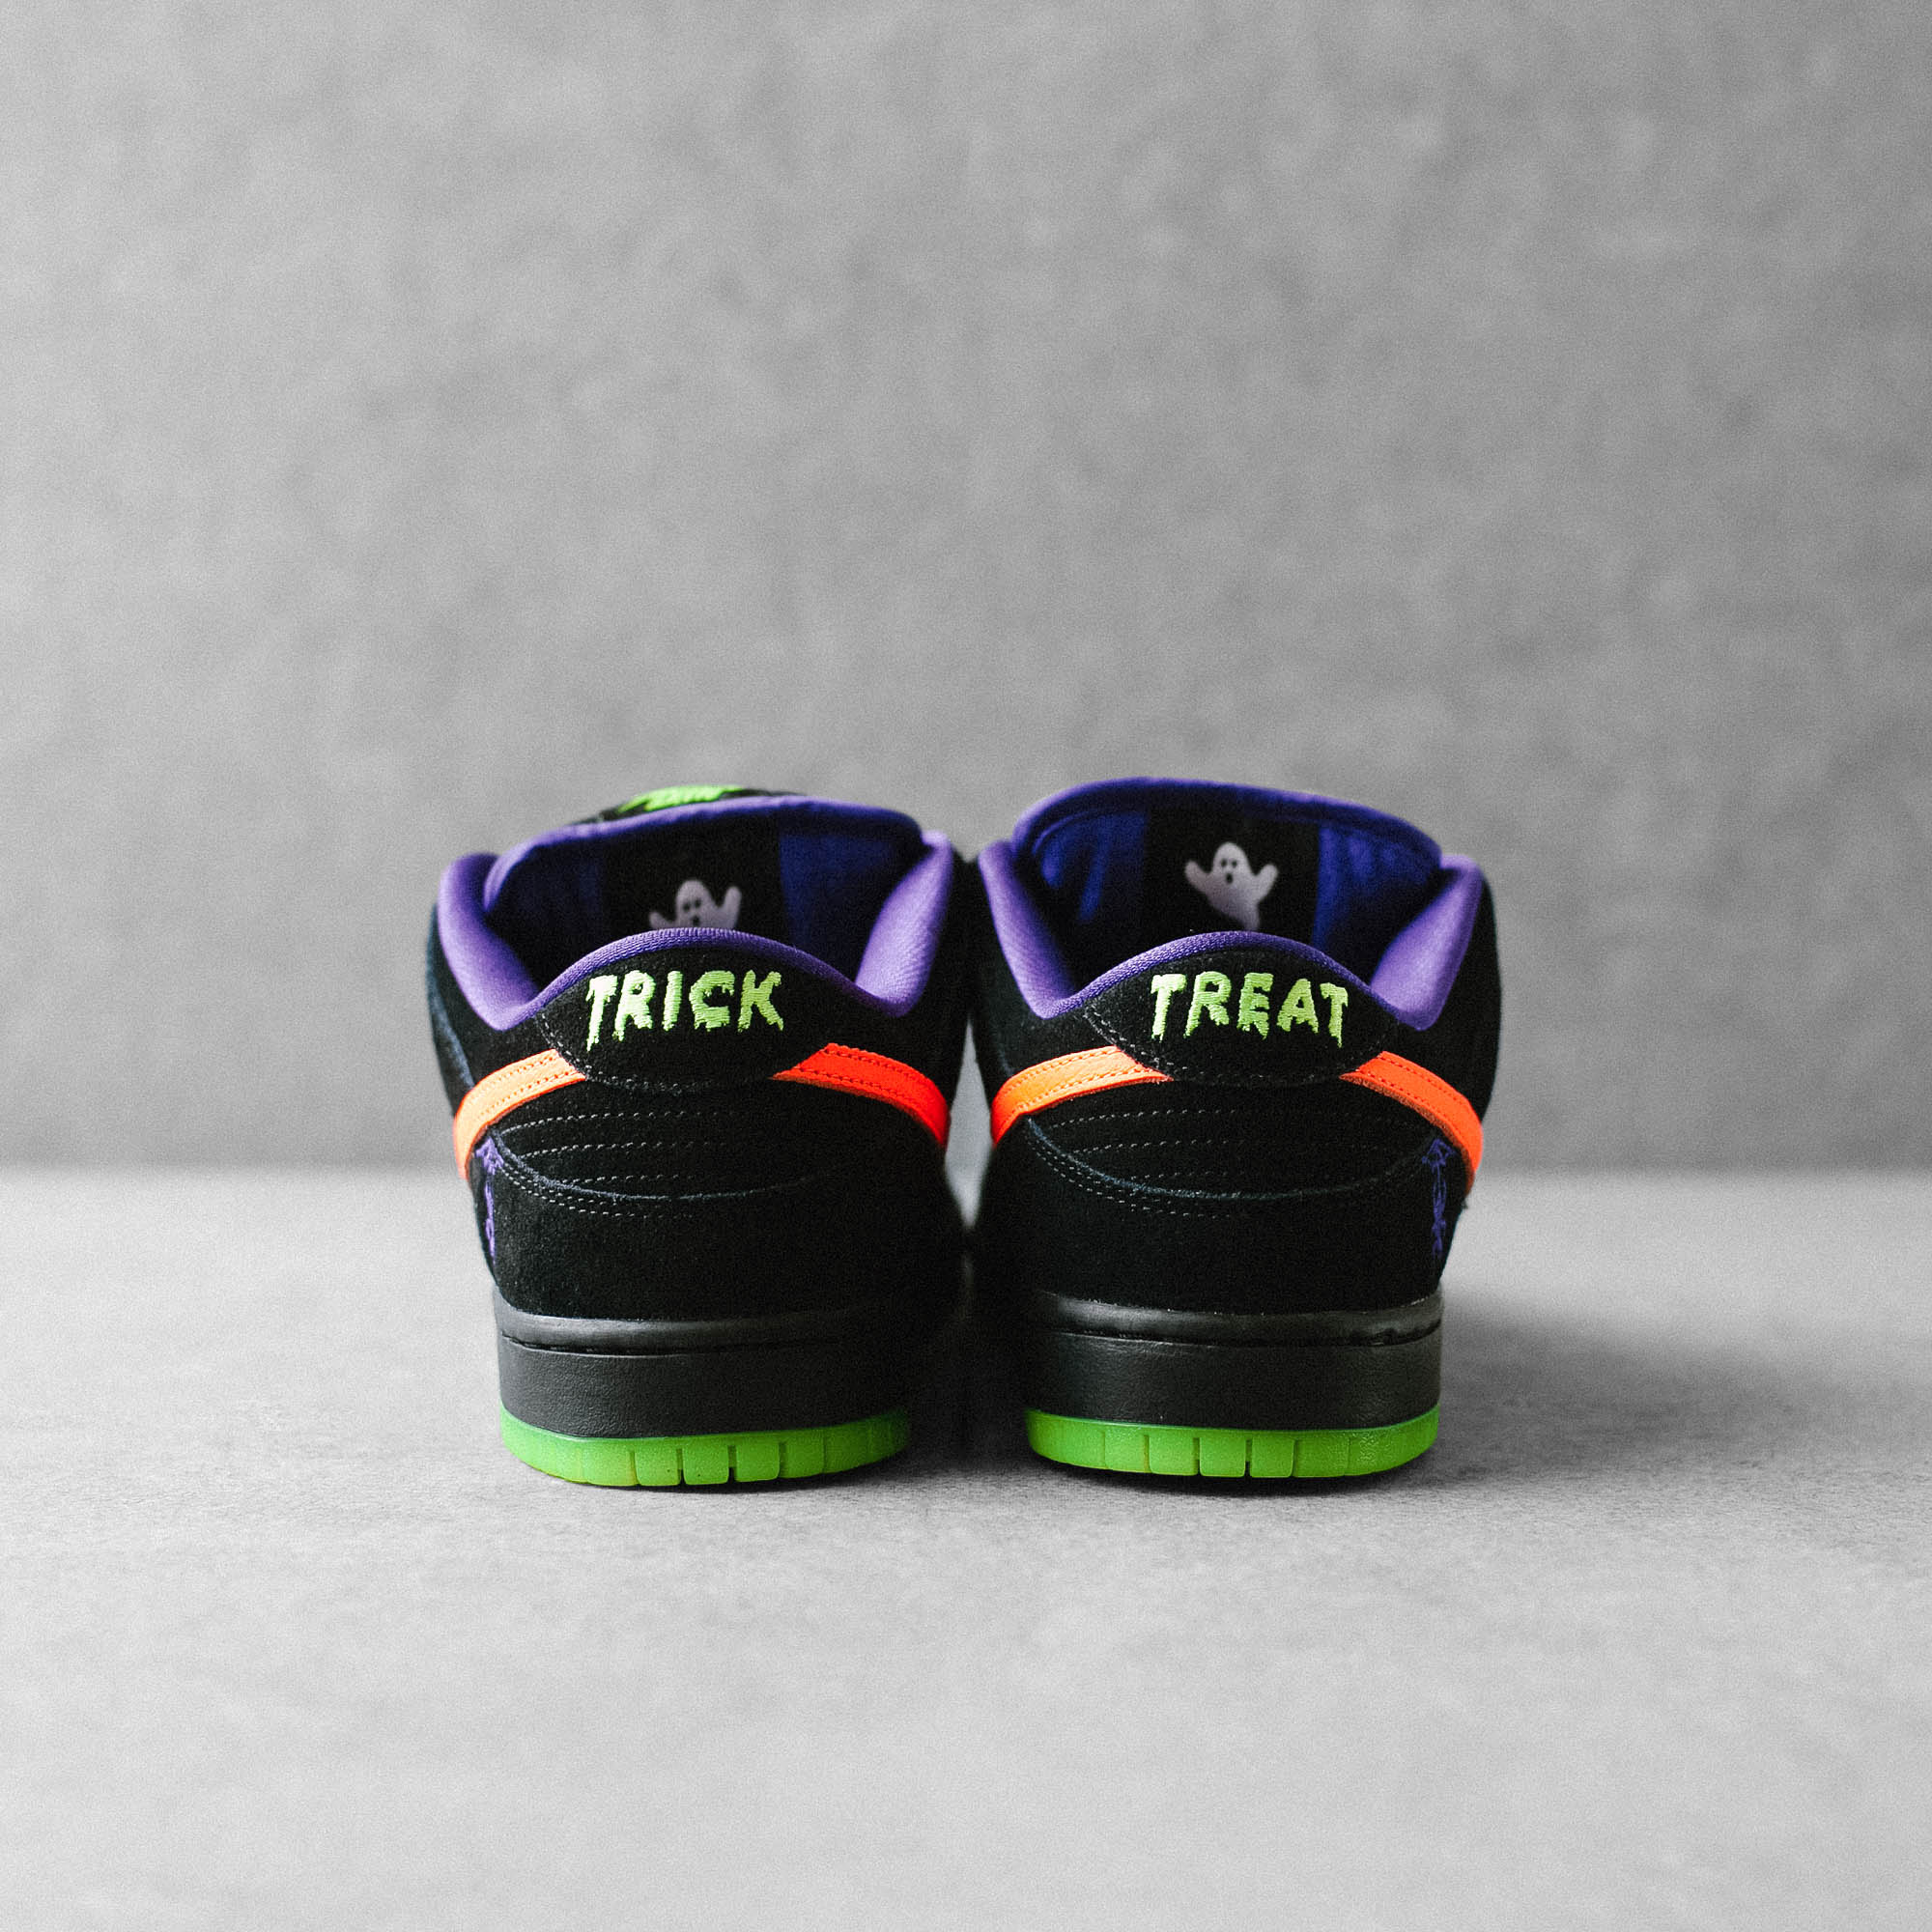 Nike SB Dunk Low Pro 'Night Of Mischief' Shoes | releases.flatspot